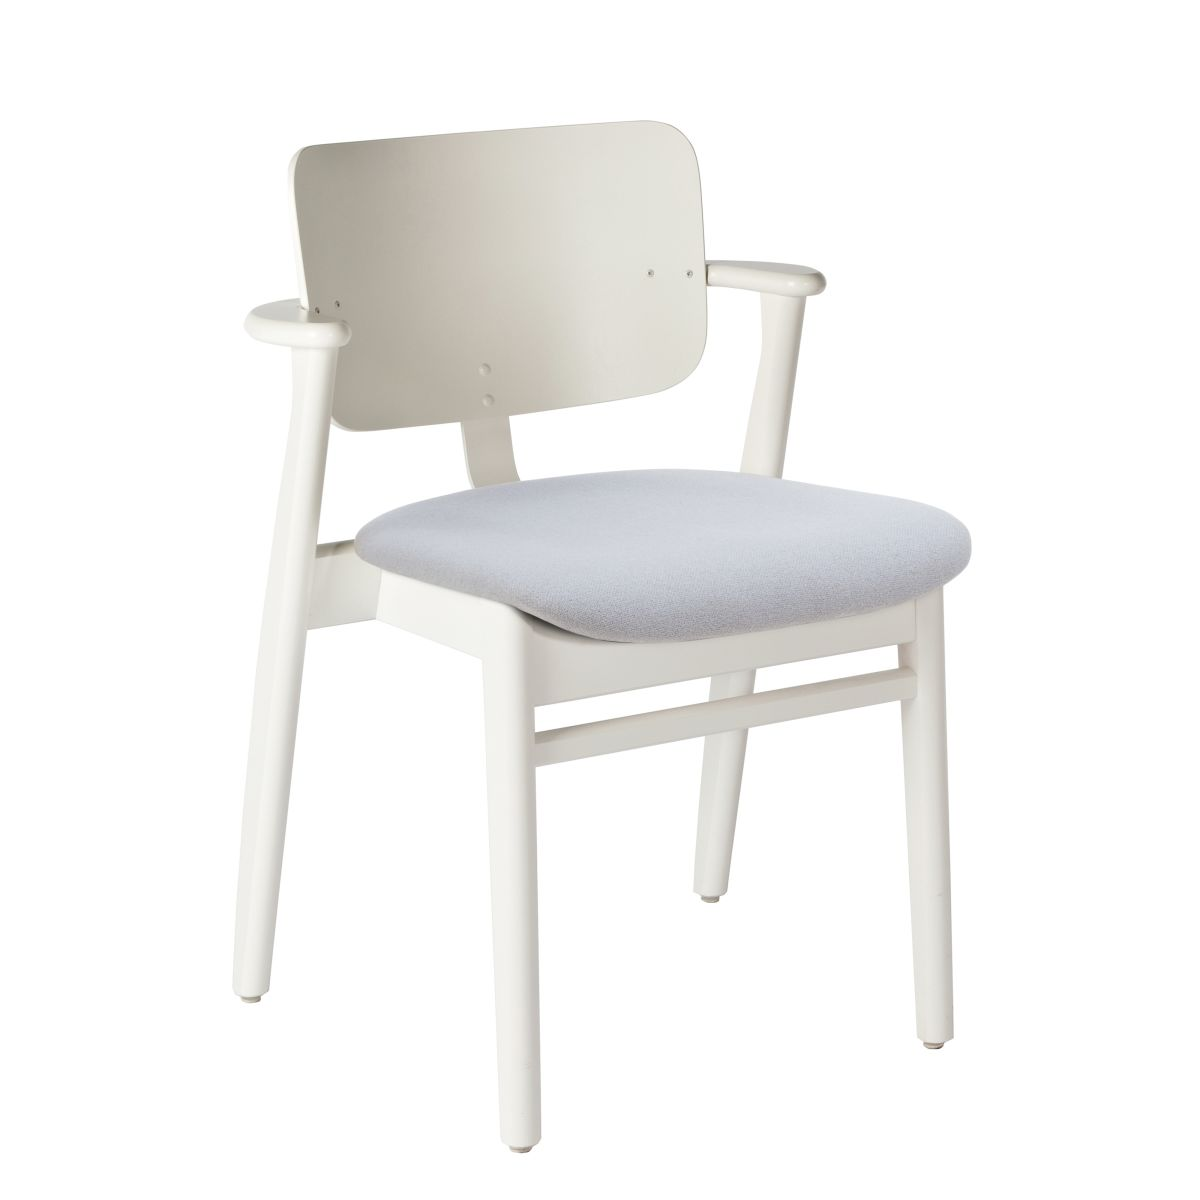 Domus-Chair-legs-white-laquered-birch_seat-fabric-grey-2651010